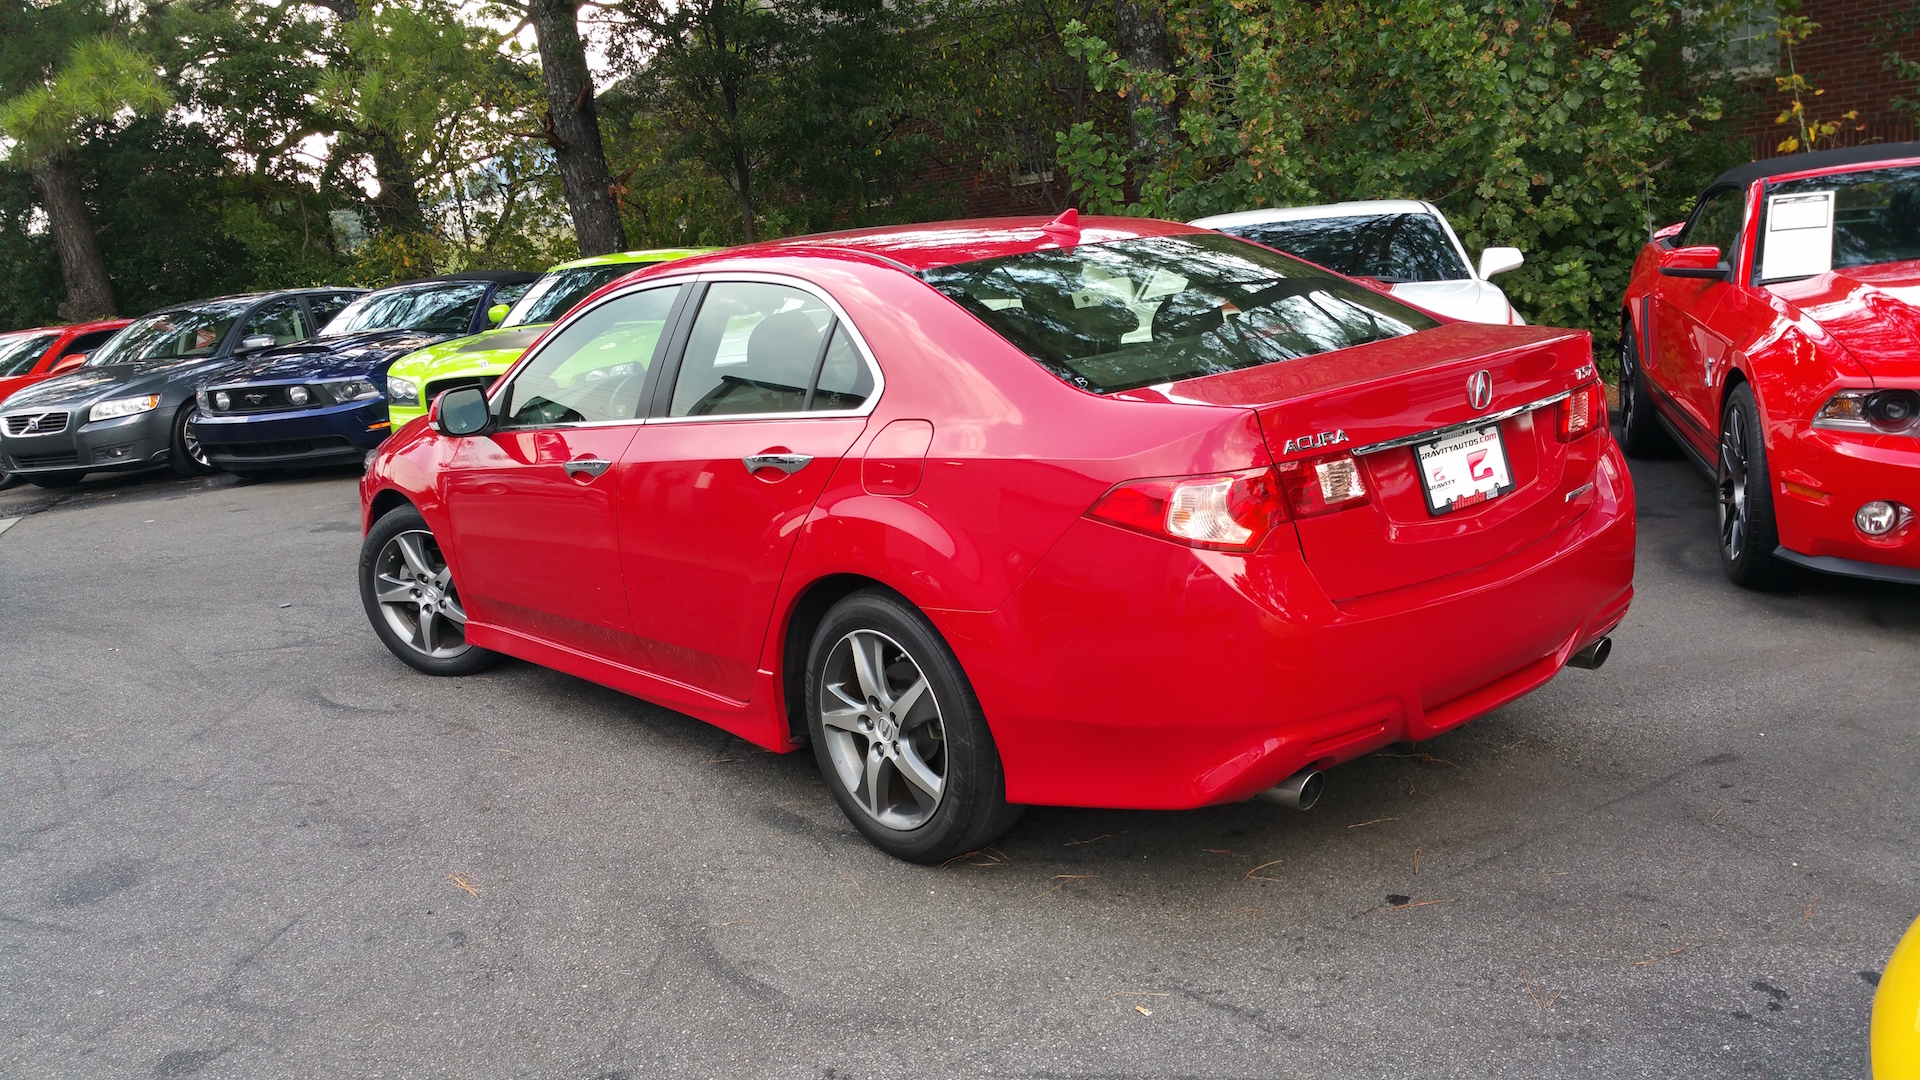 Mods For TSX Special Edition Acura TSX Forum - Acura tsx mods